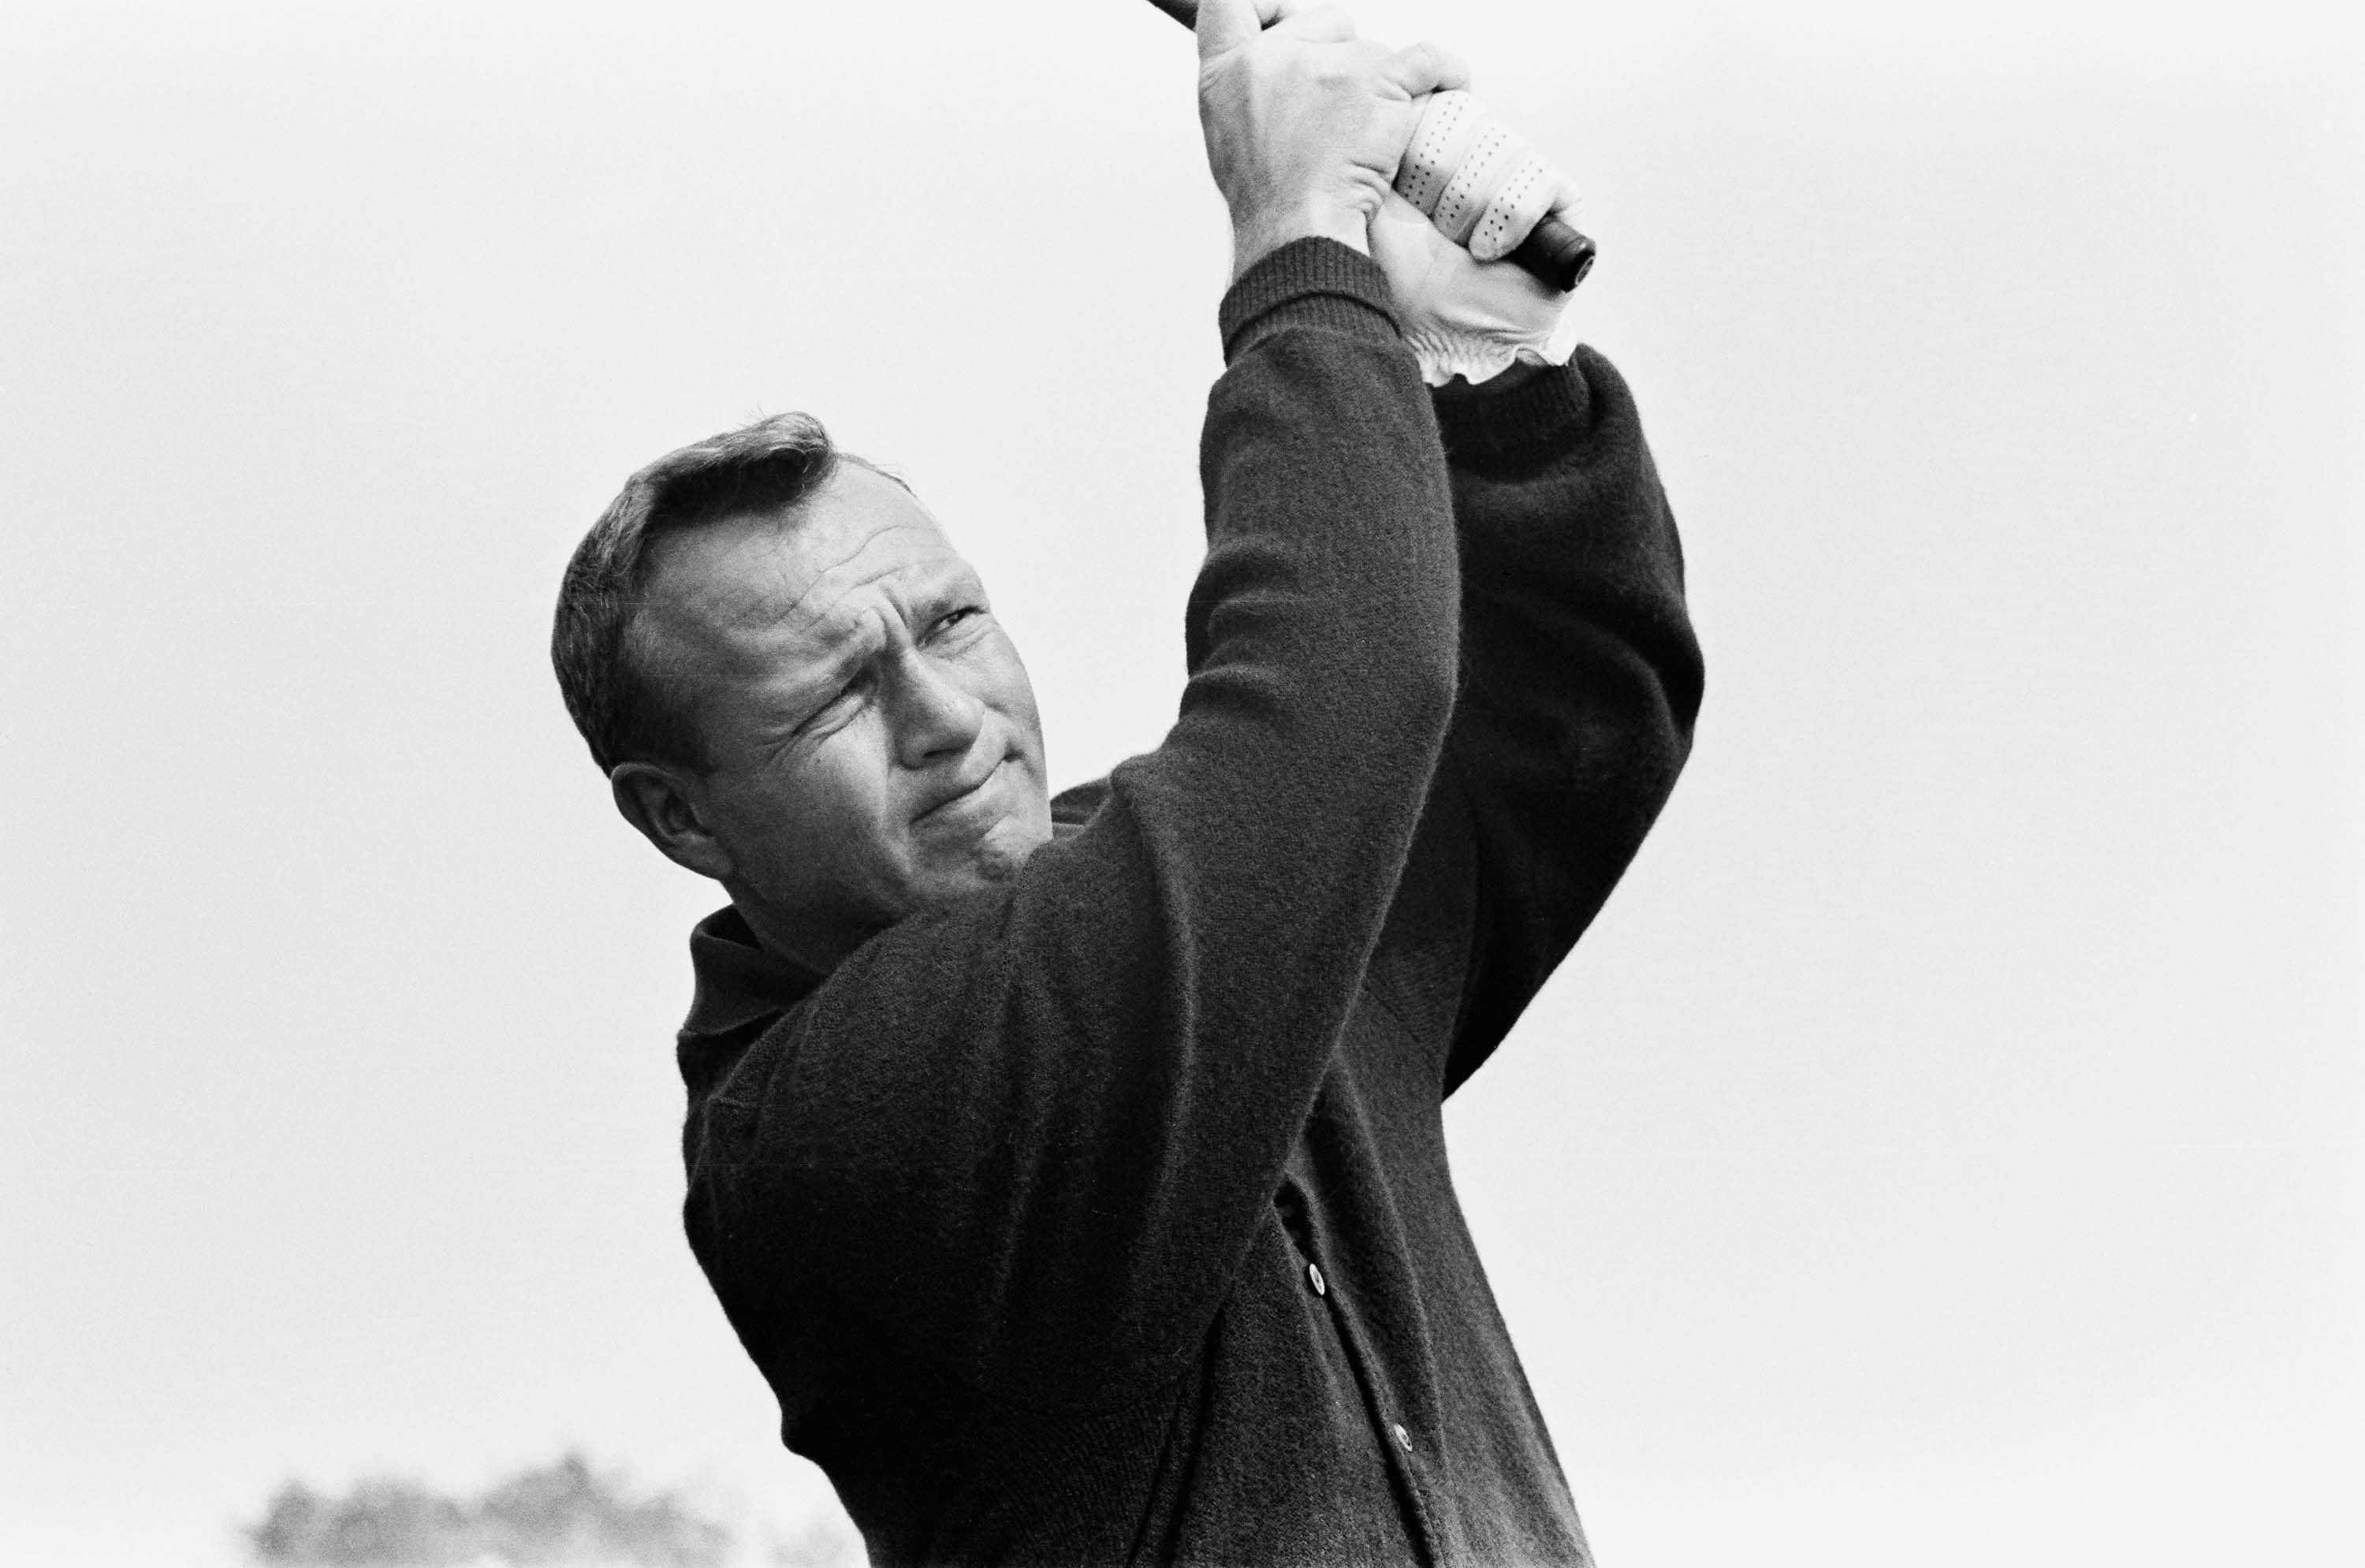 6. 1963: Palmer, Boros, Nicklaus, Take 2